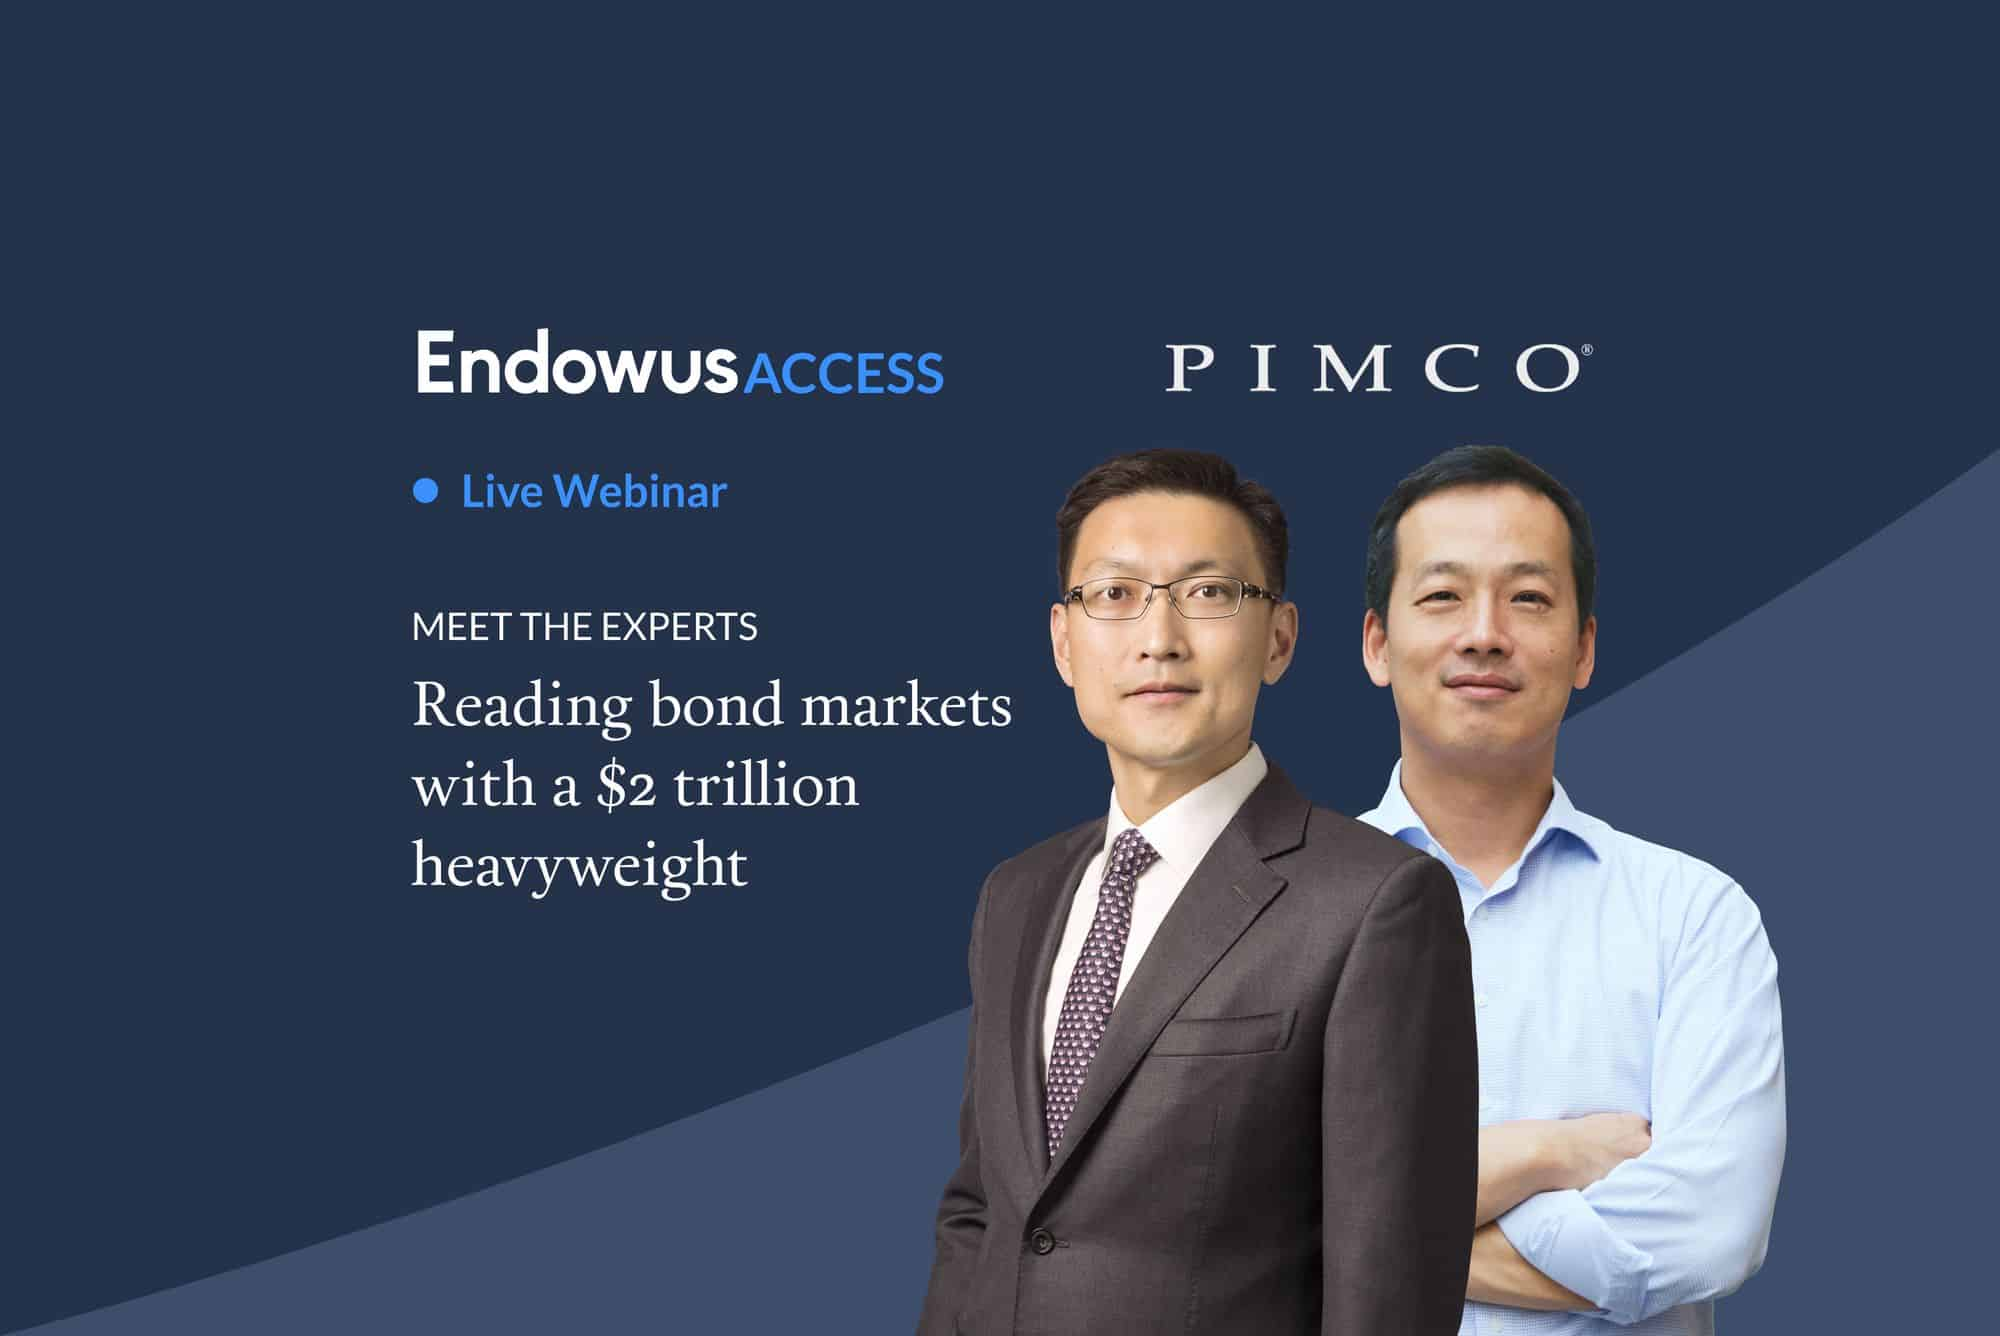 Reading bond markets with PIMCO – a $2 trillion heavyweight